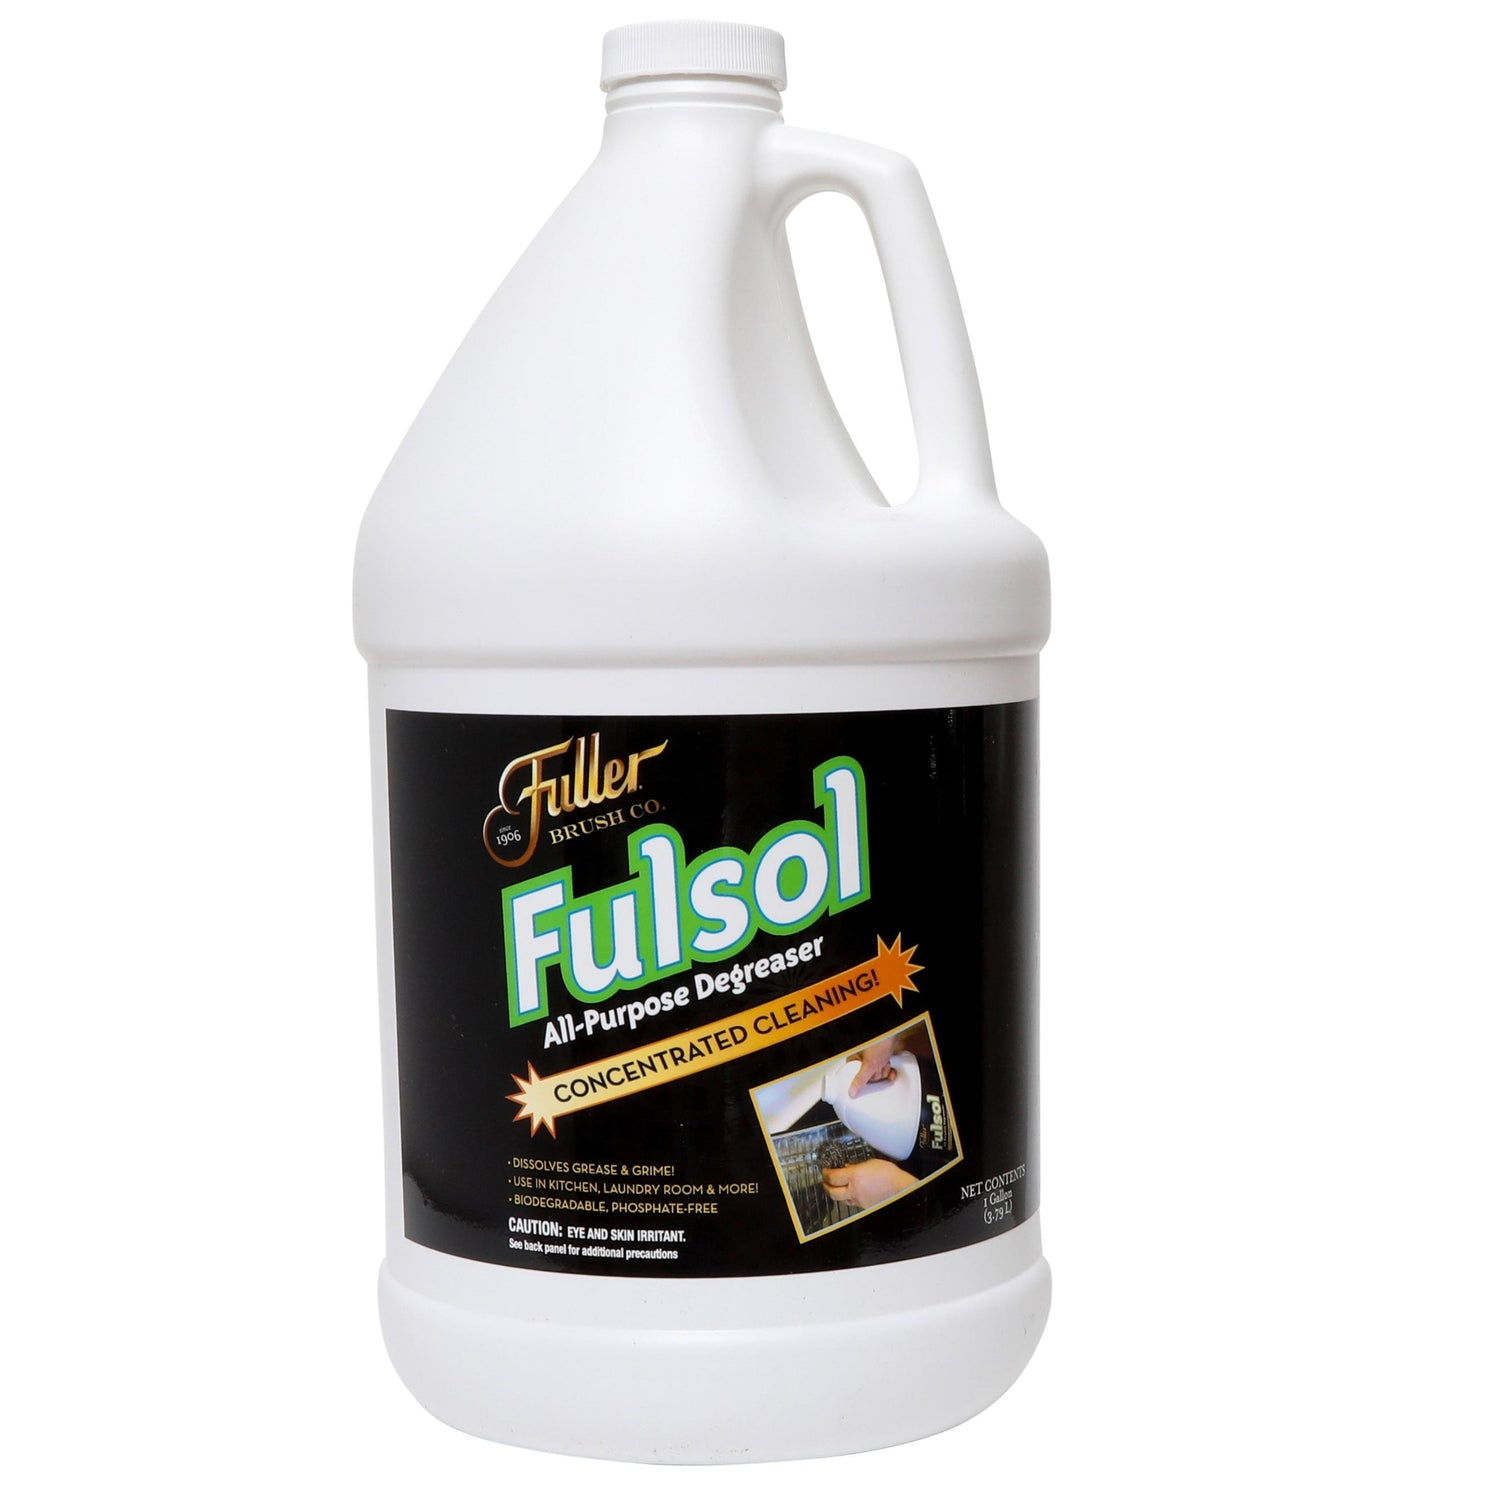 Fulsol Degreaser - All Purpose Oil, Grease & Grime Cleaner for Multi-Surface Cleaning-Degreasers-Fuller Brush Company